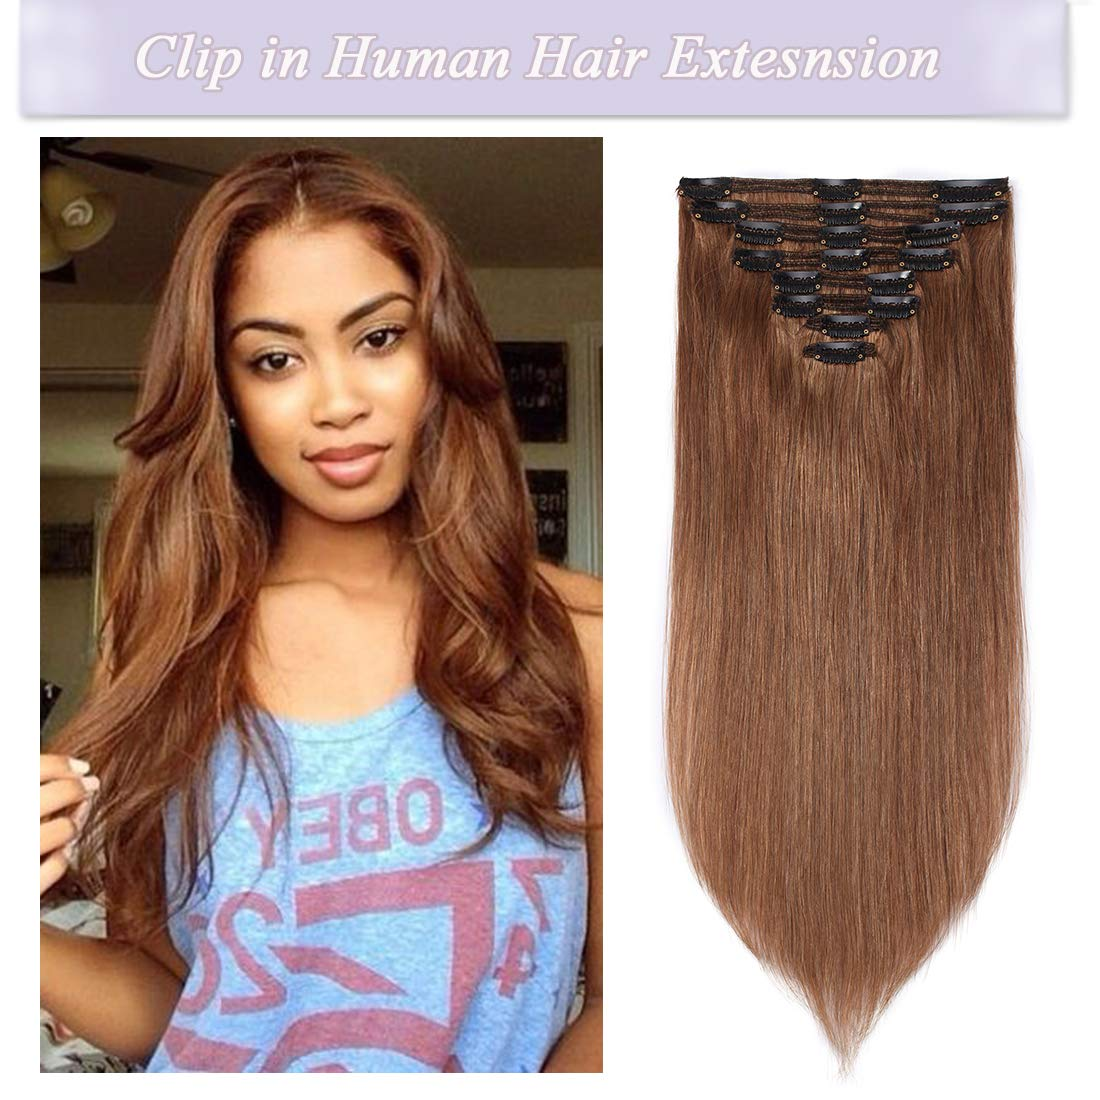 e759e1d5b59 s-noilite Clip in Human Hair Extensions 100% Real Remy Thick True Double  Weft Full Head 8 Pieces 18...